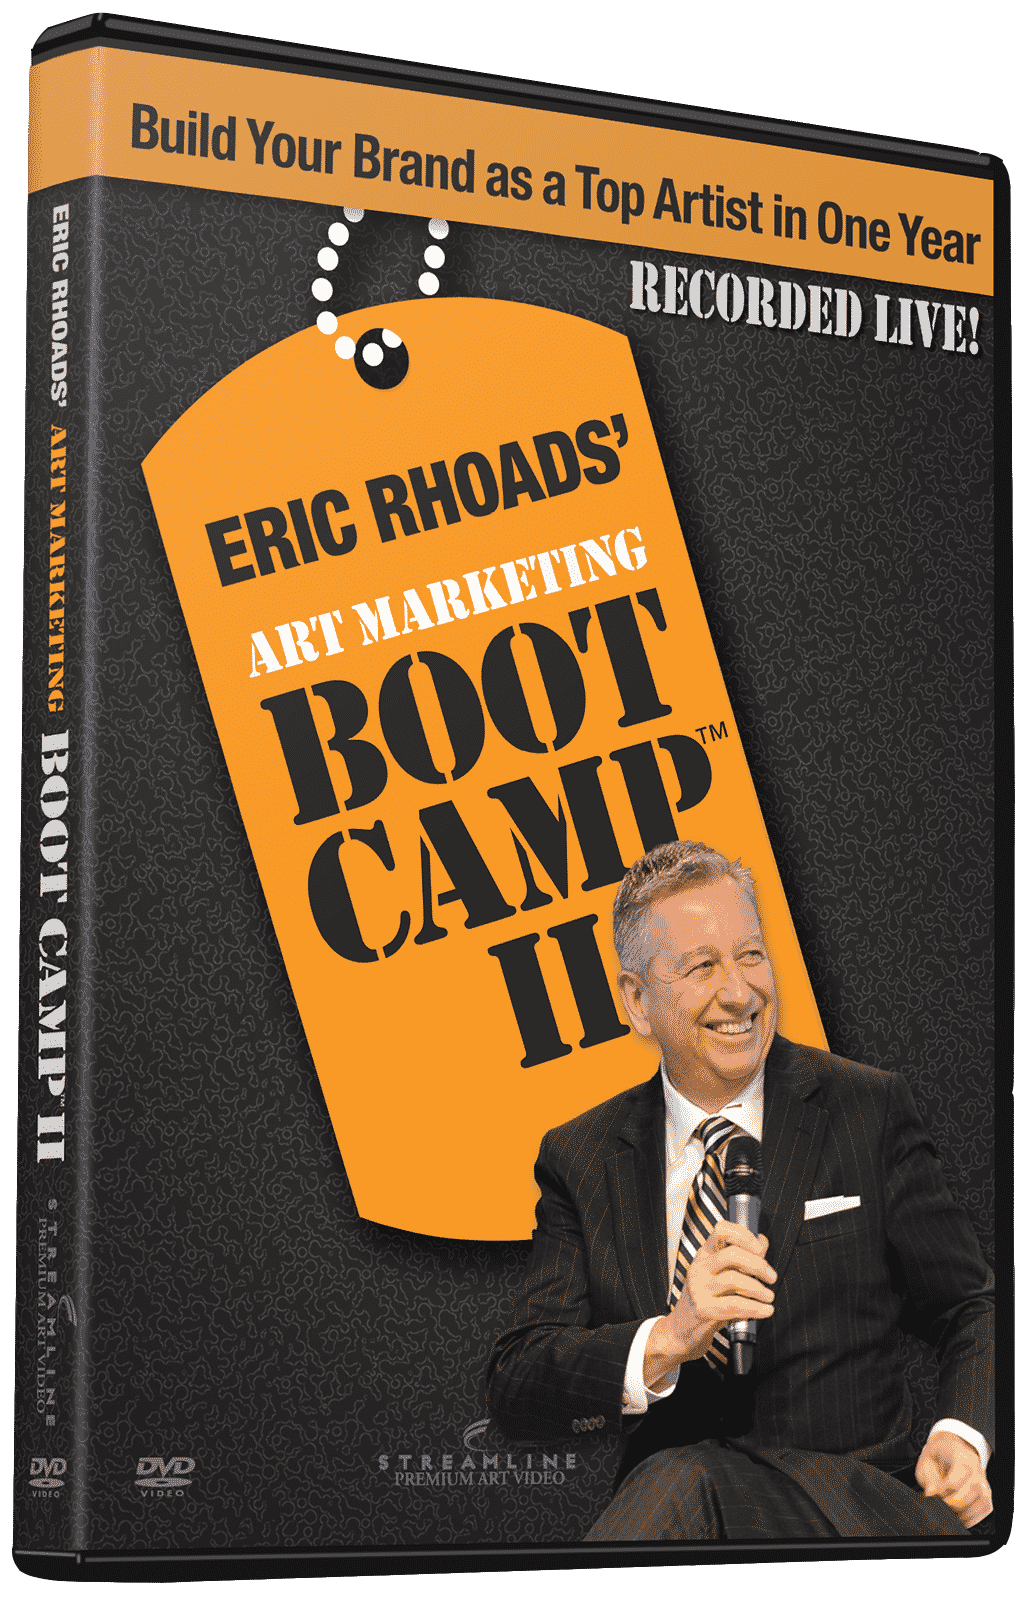 Eric Rhoads' Art Marketing Boot Camp II